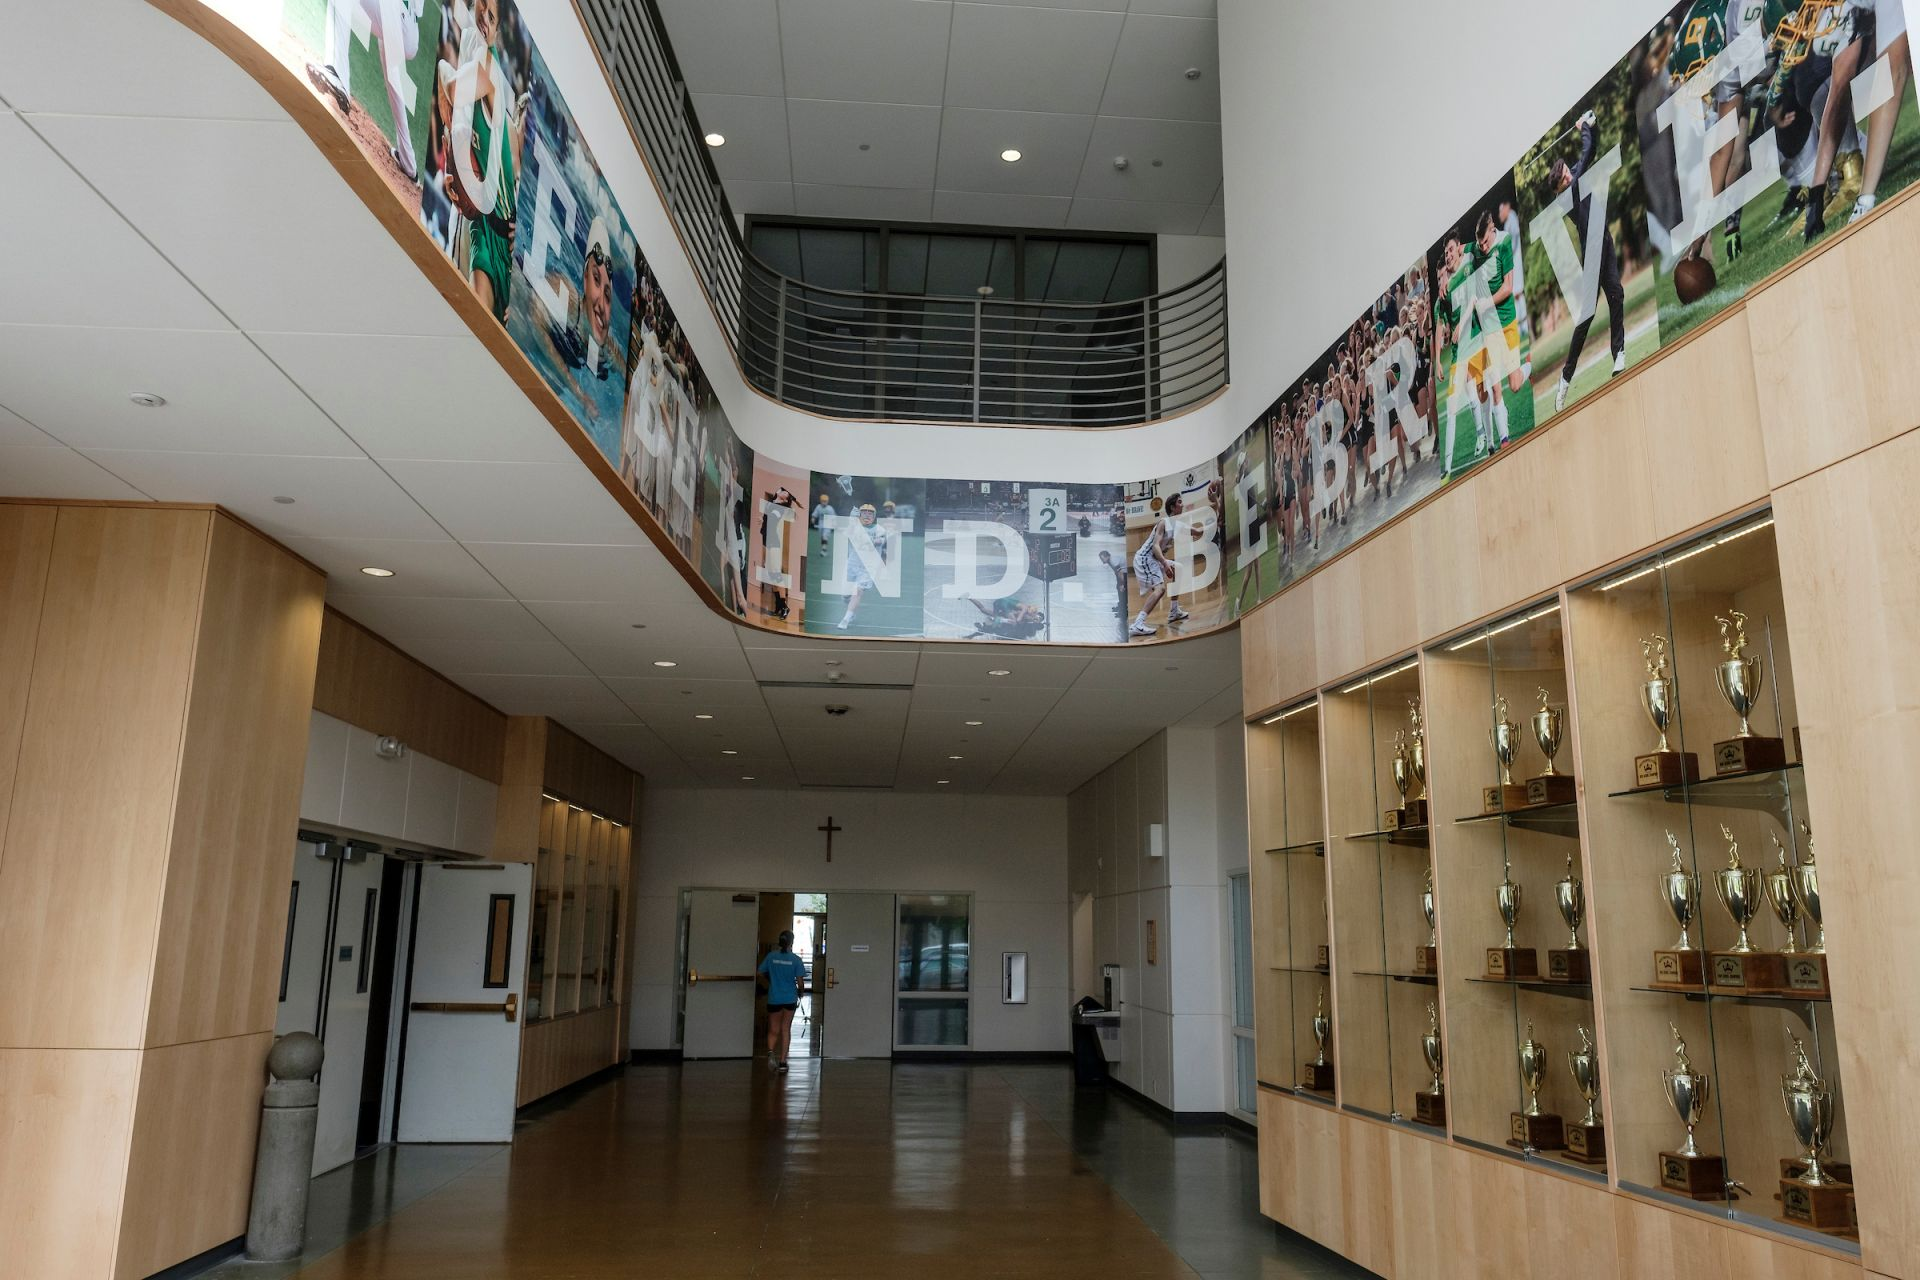 The Ernie Rose Activities Center opened last fall and provides our students with state of the art training and educational space. The lobby features the school motto,